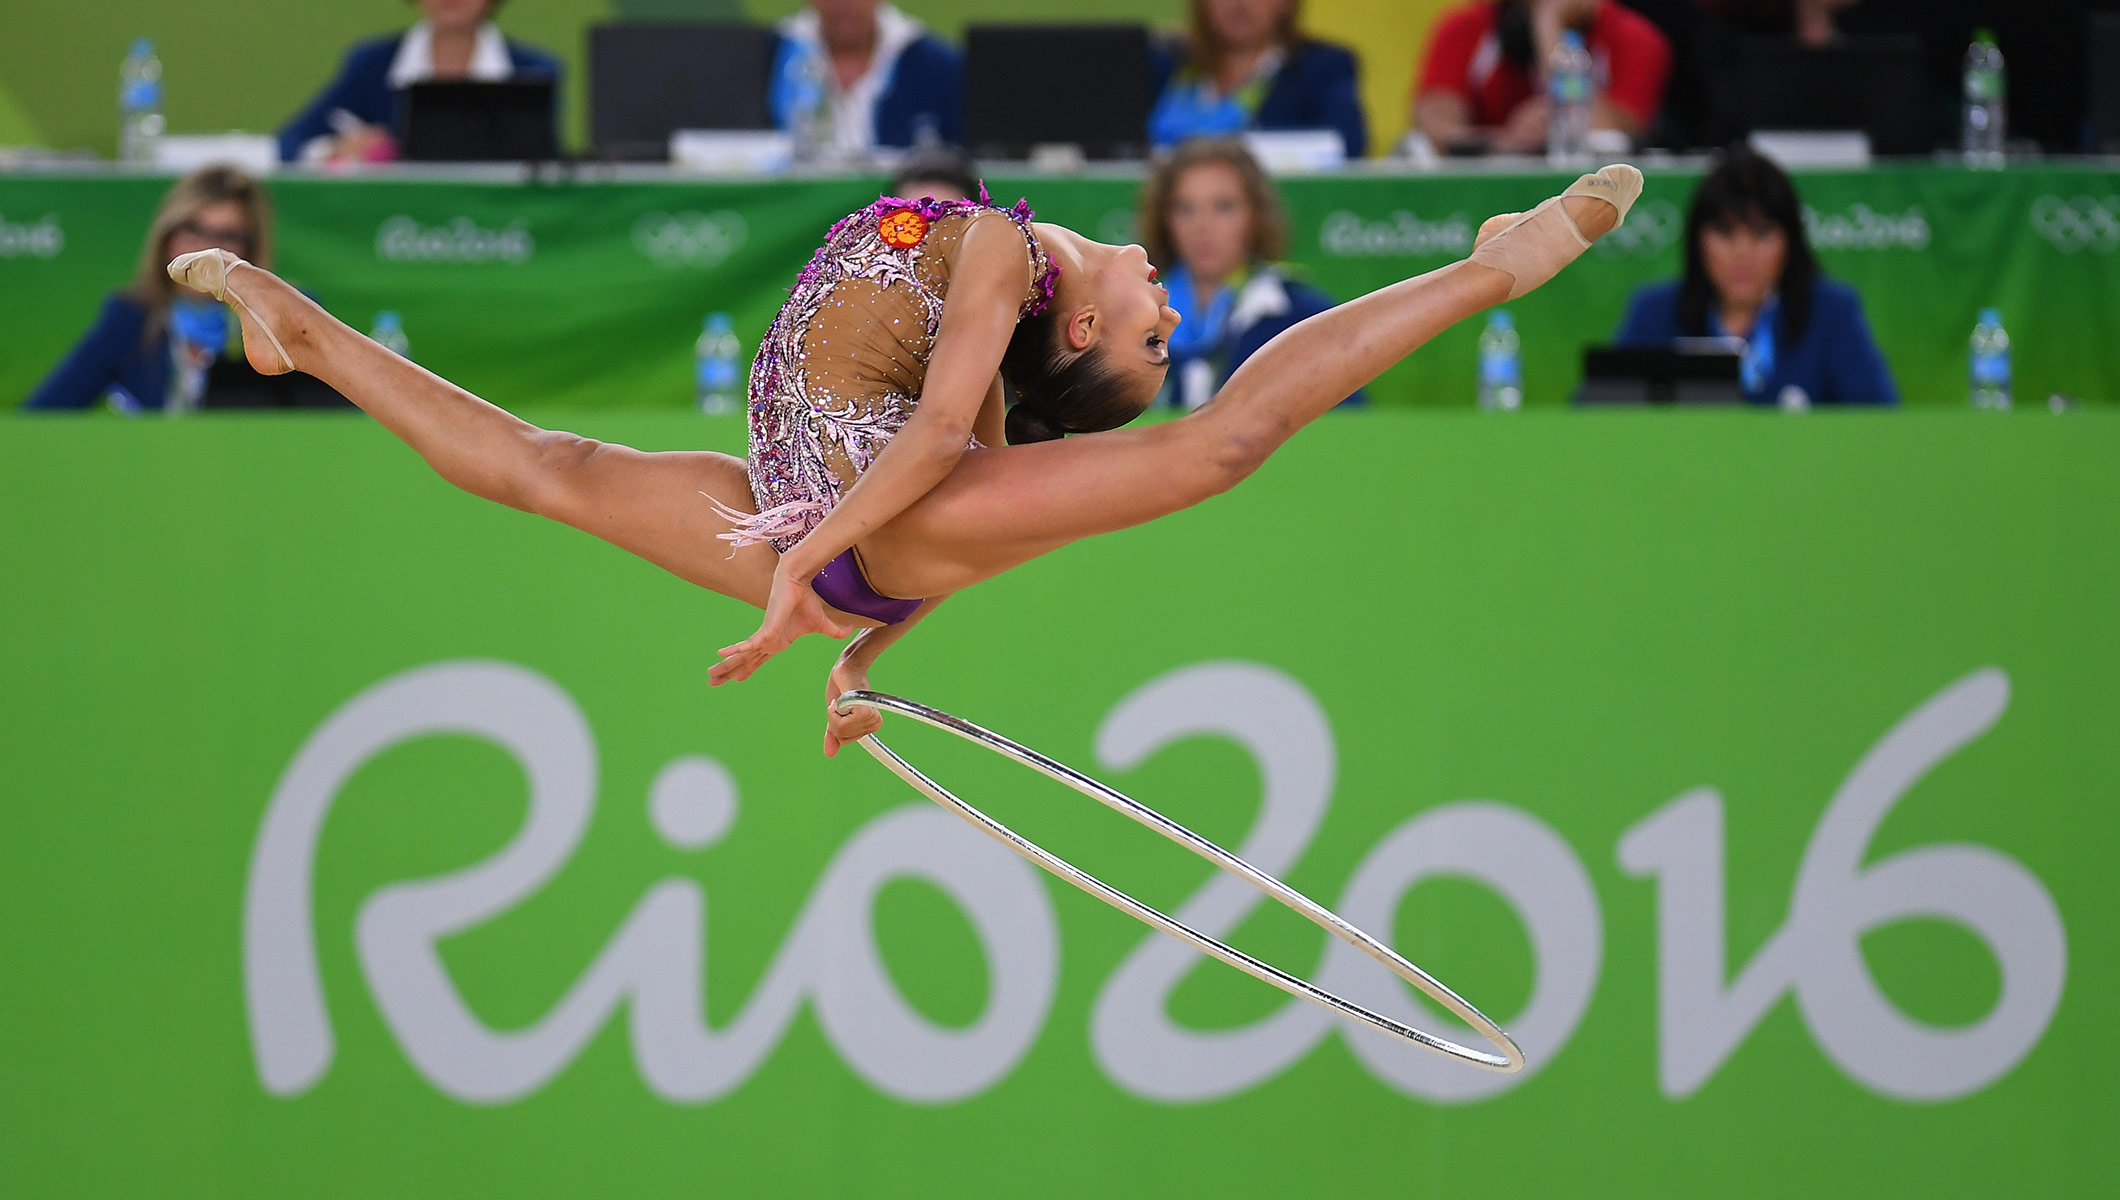 Russia continue golden streak in rhythmic gymnastics - Olympic News